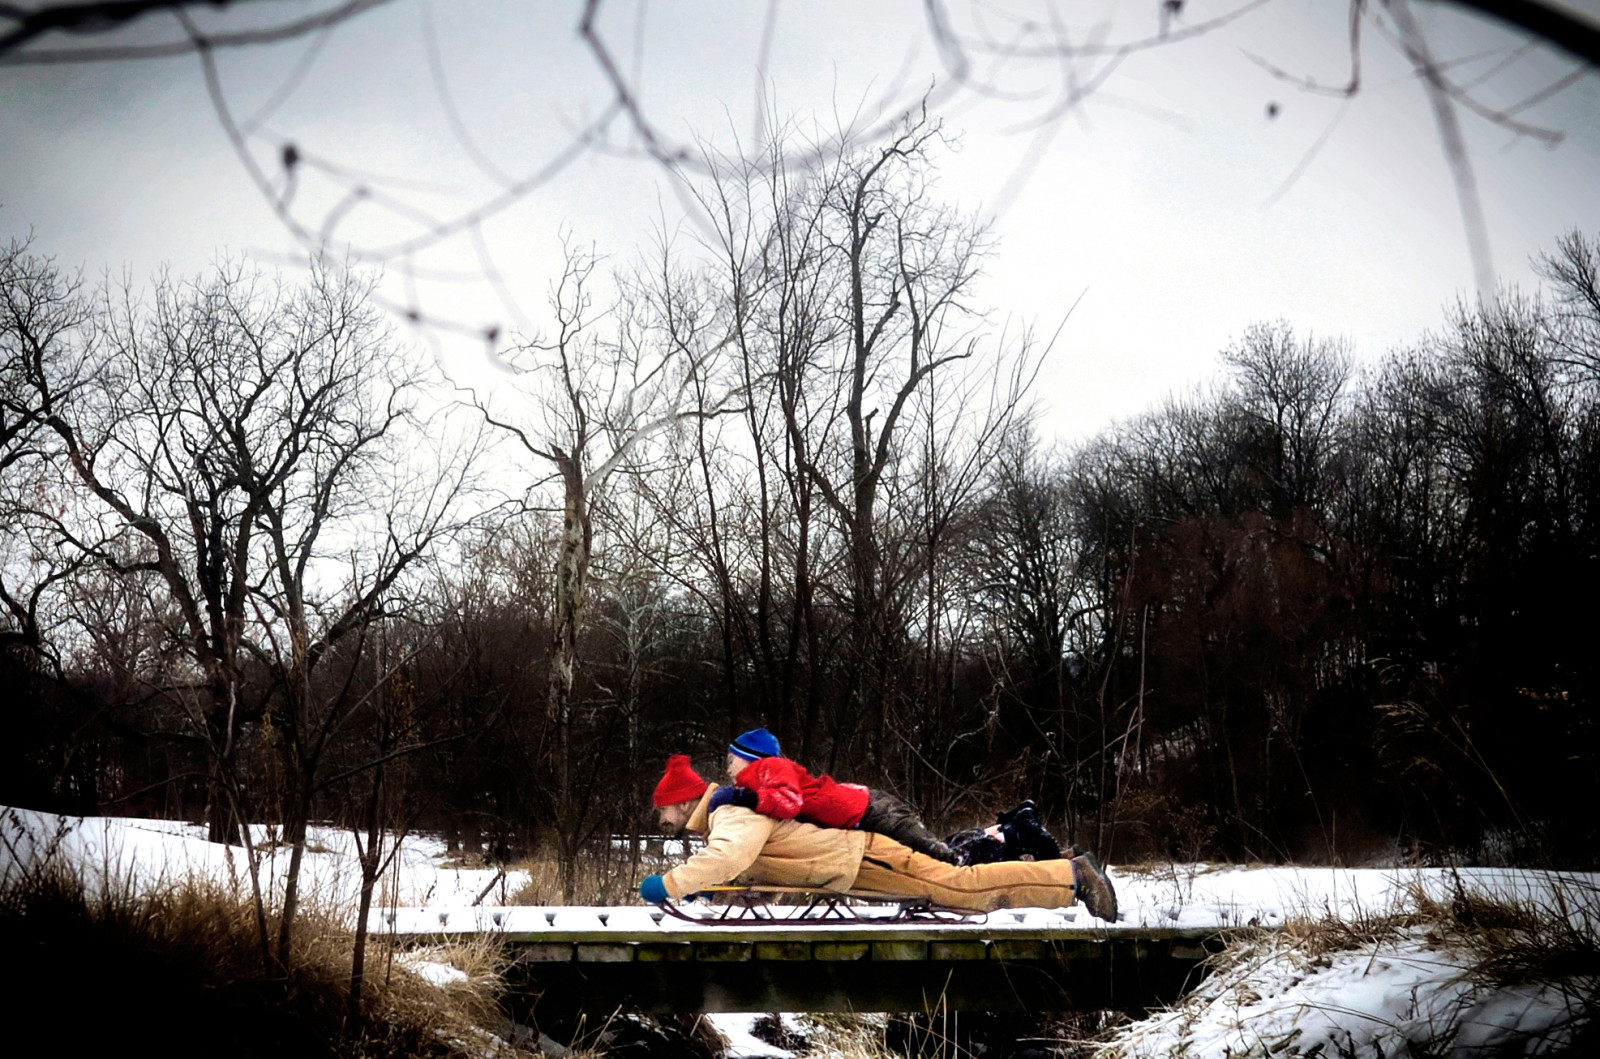 Brent Hagar and his 8 year-old son Levi slide across an ice-covered bridge at Stephens Lake Park in Columbia, Mo. after sledding down a nearby hill during a mid-January snow day..